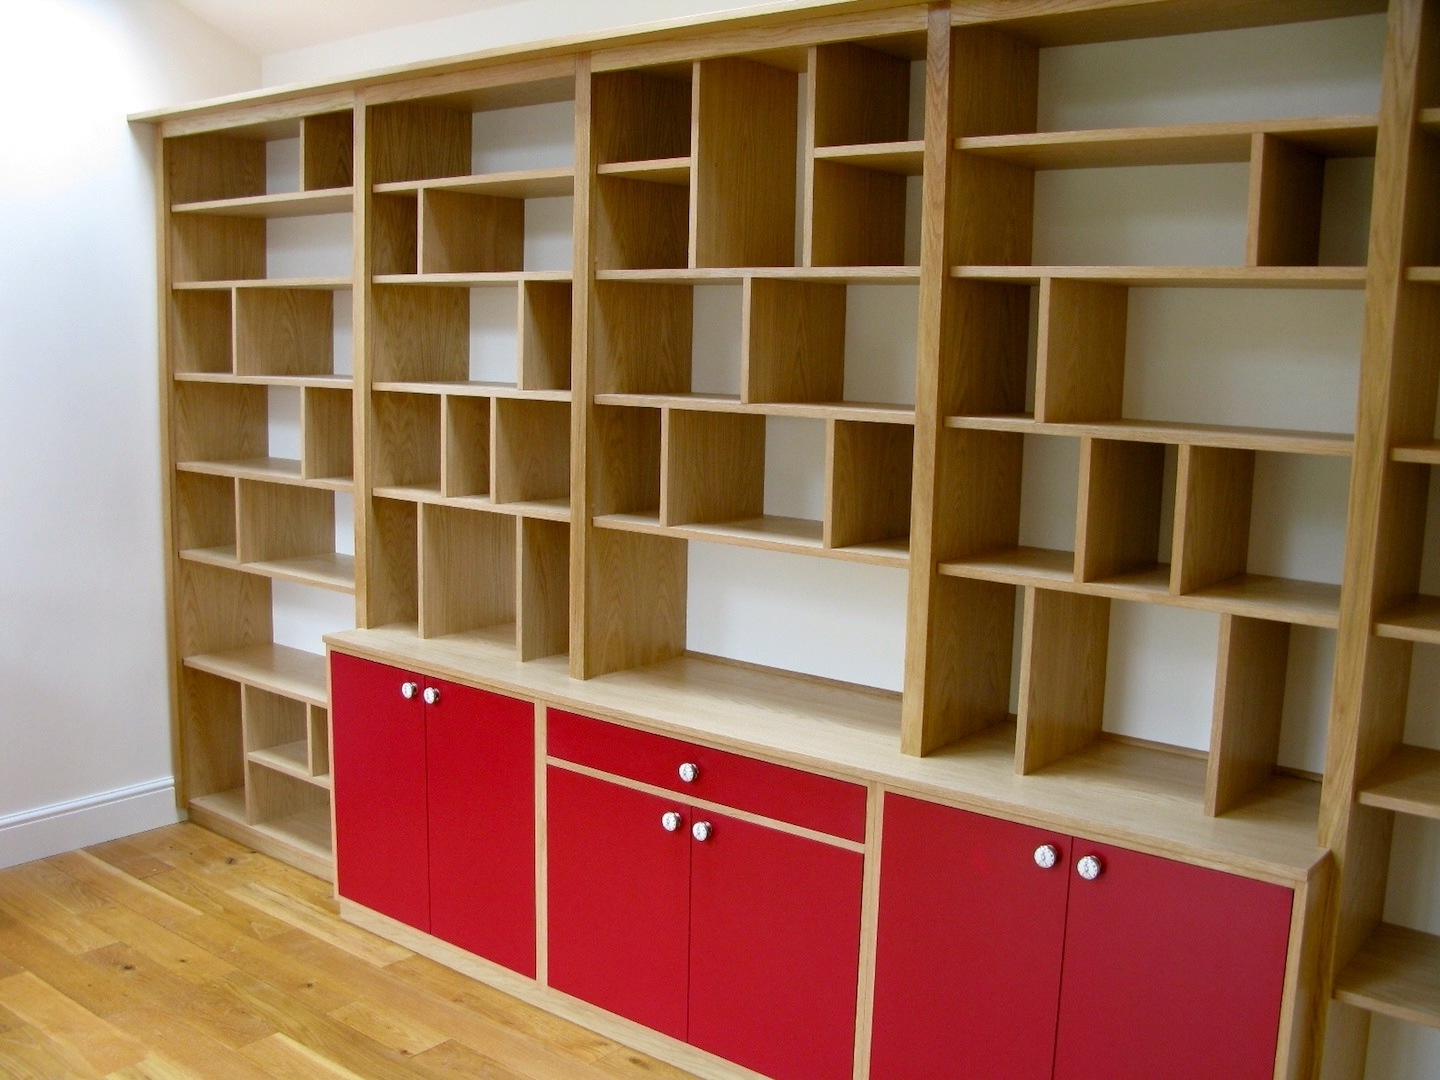 York Carpenters & Cabinet Makers – Fern Manor / Martin Smith With Current Bespoke Shelving (Gallery 8 of 15)